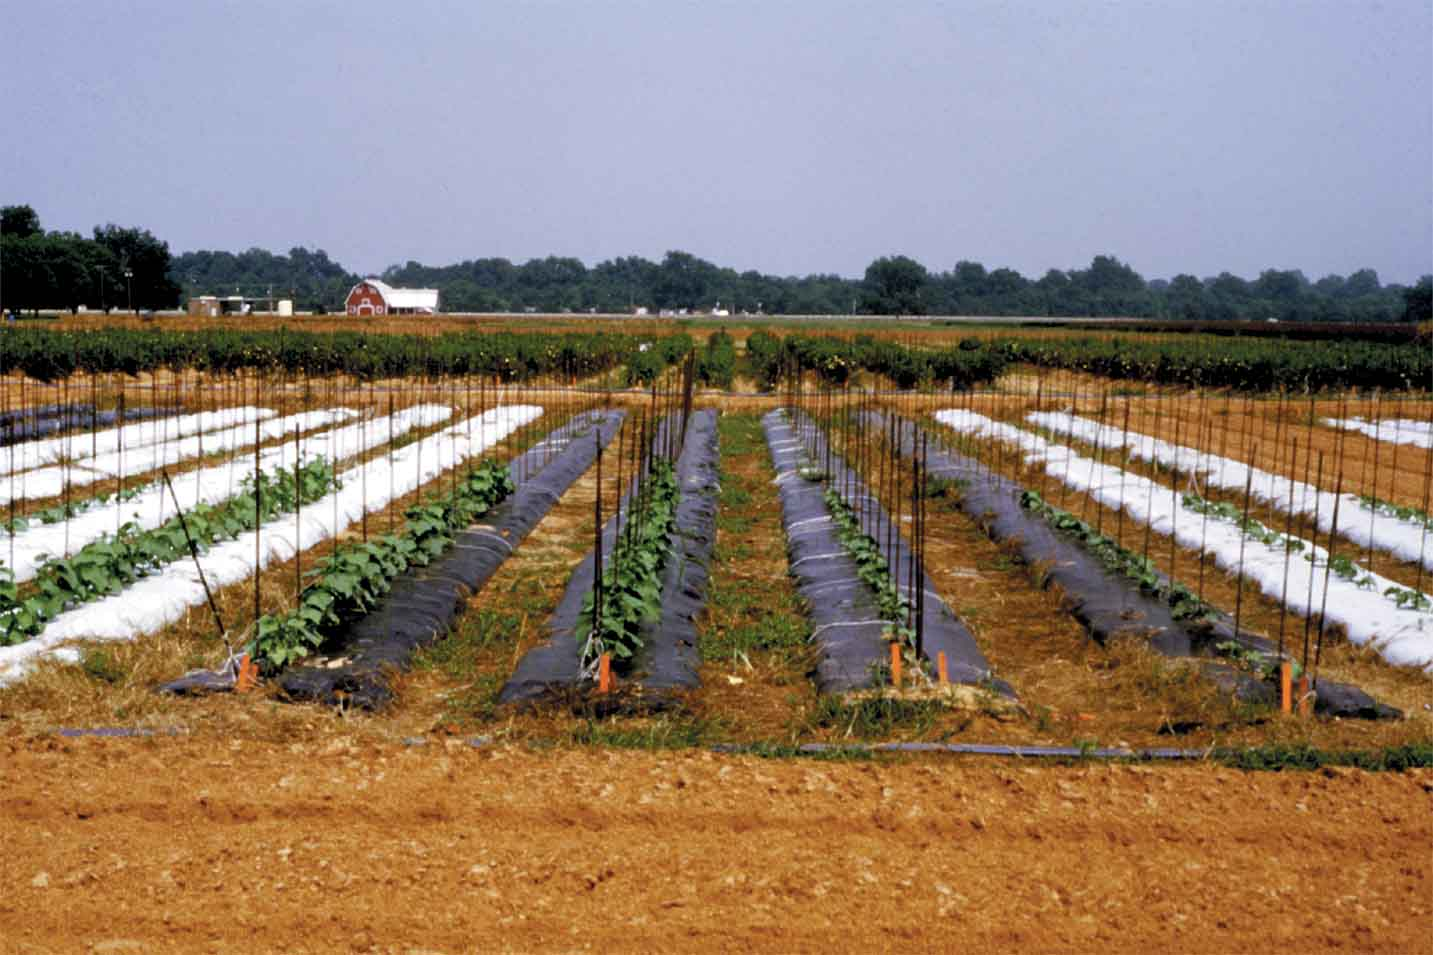 Reusing Black Polyethylene Mulch Saves Money in Vegetable Business